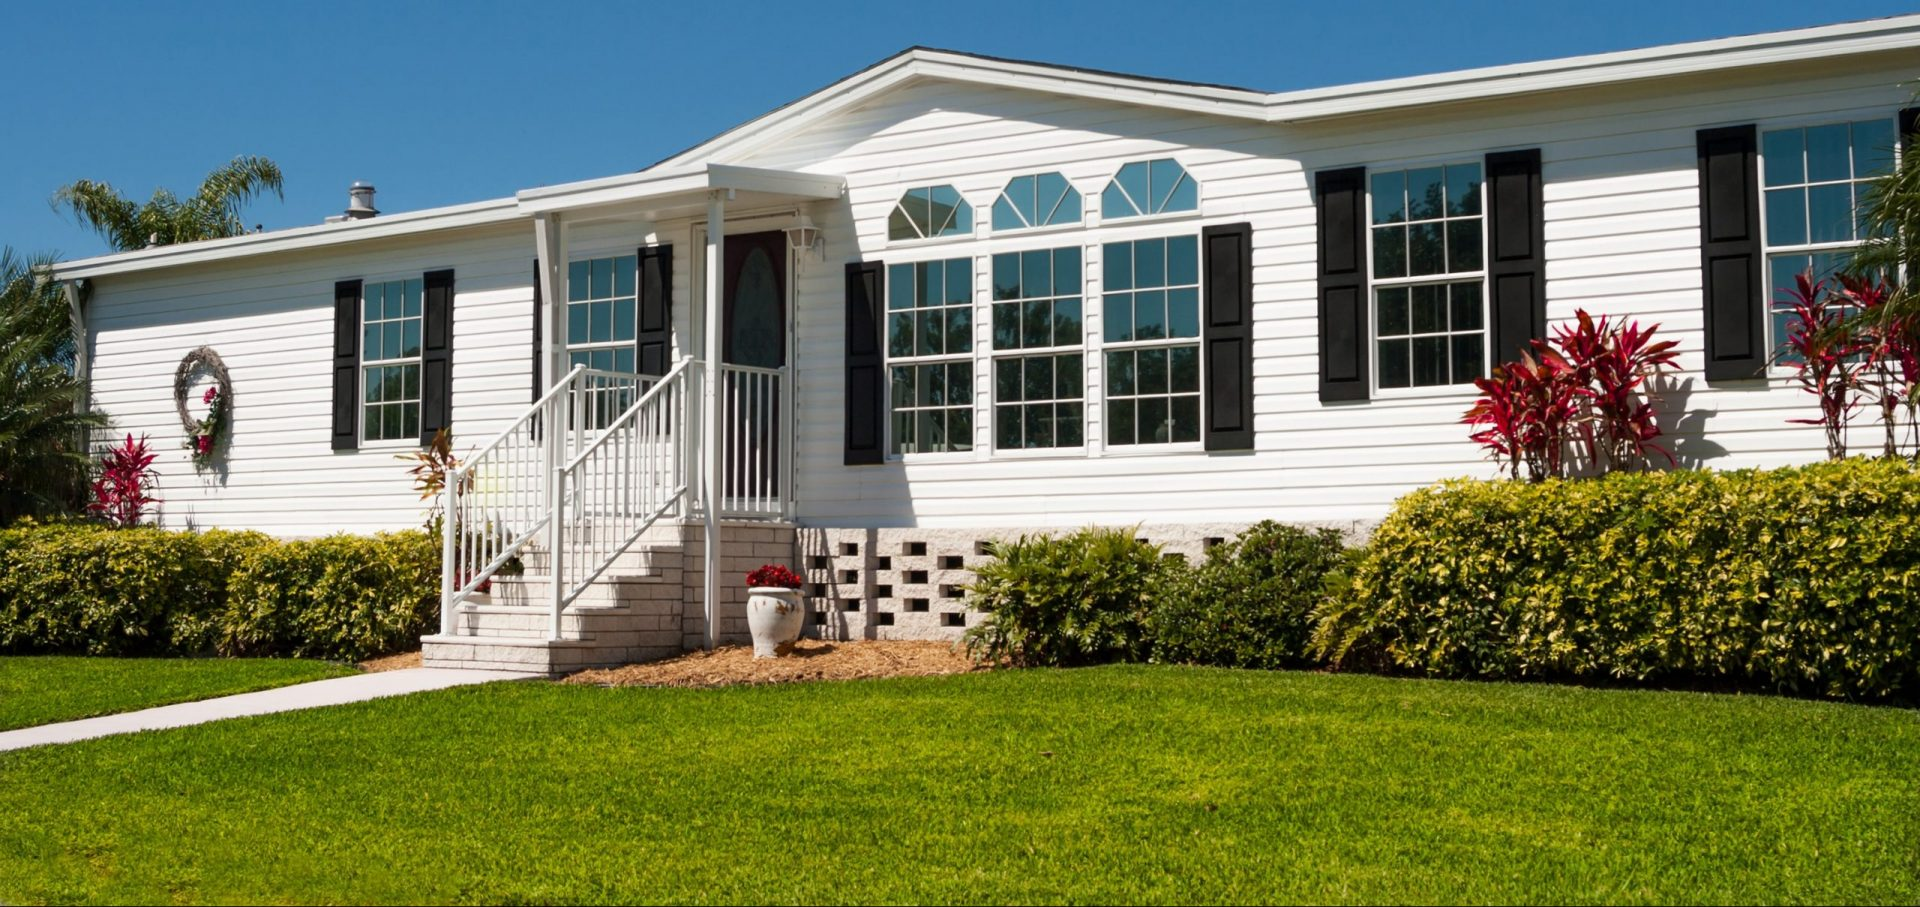 Patrick Manufactured Homes